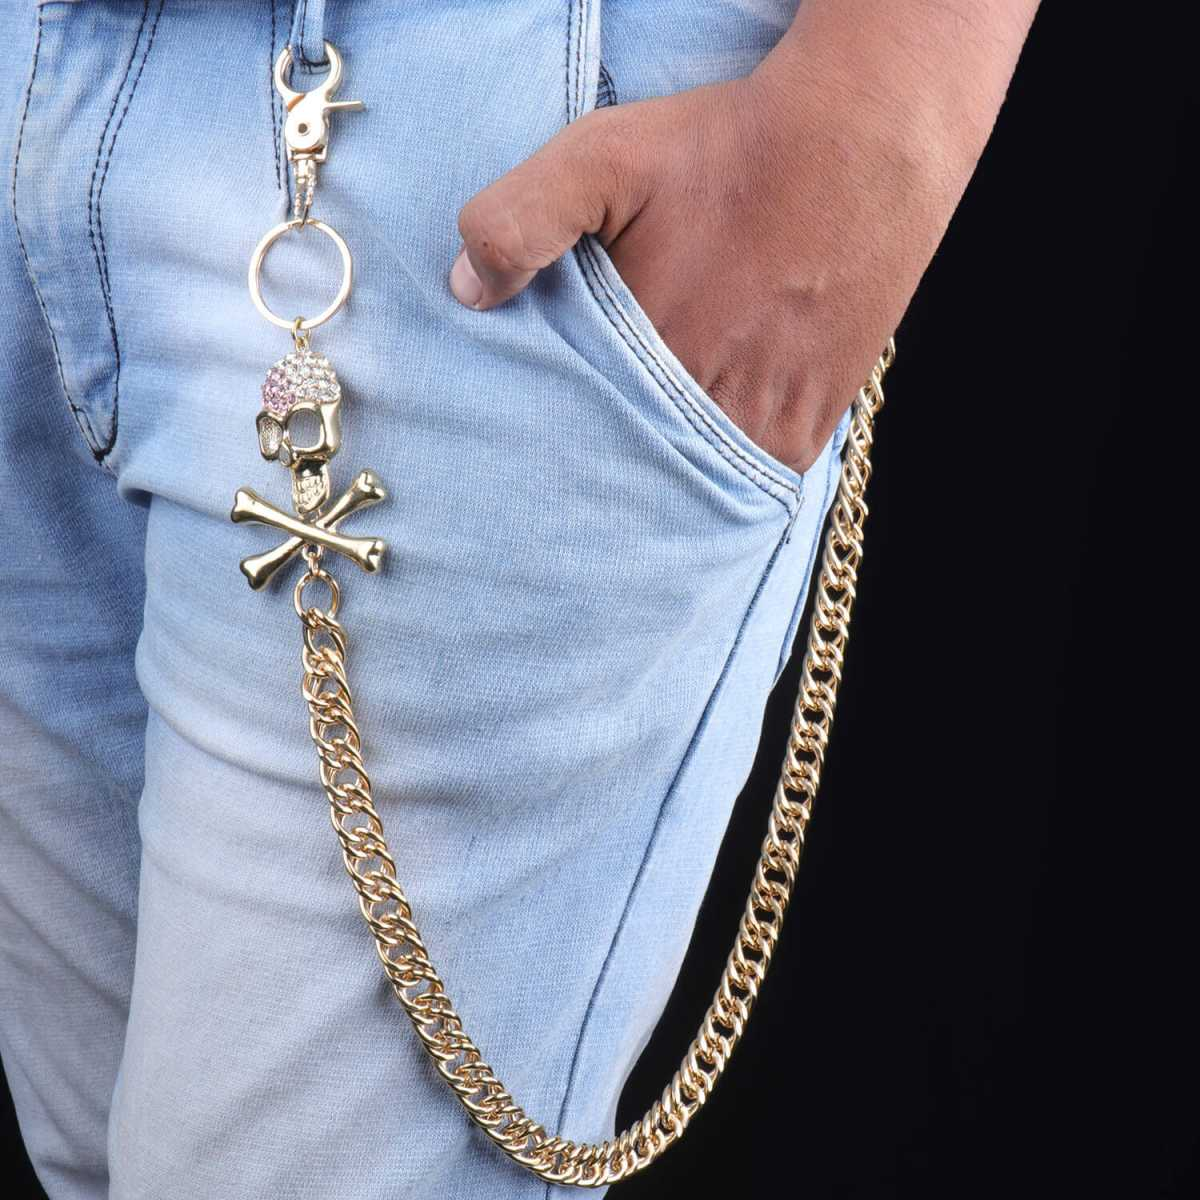 SILVERSHINE goldplated Designer Skull HipHop Men's Trousers chain